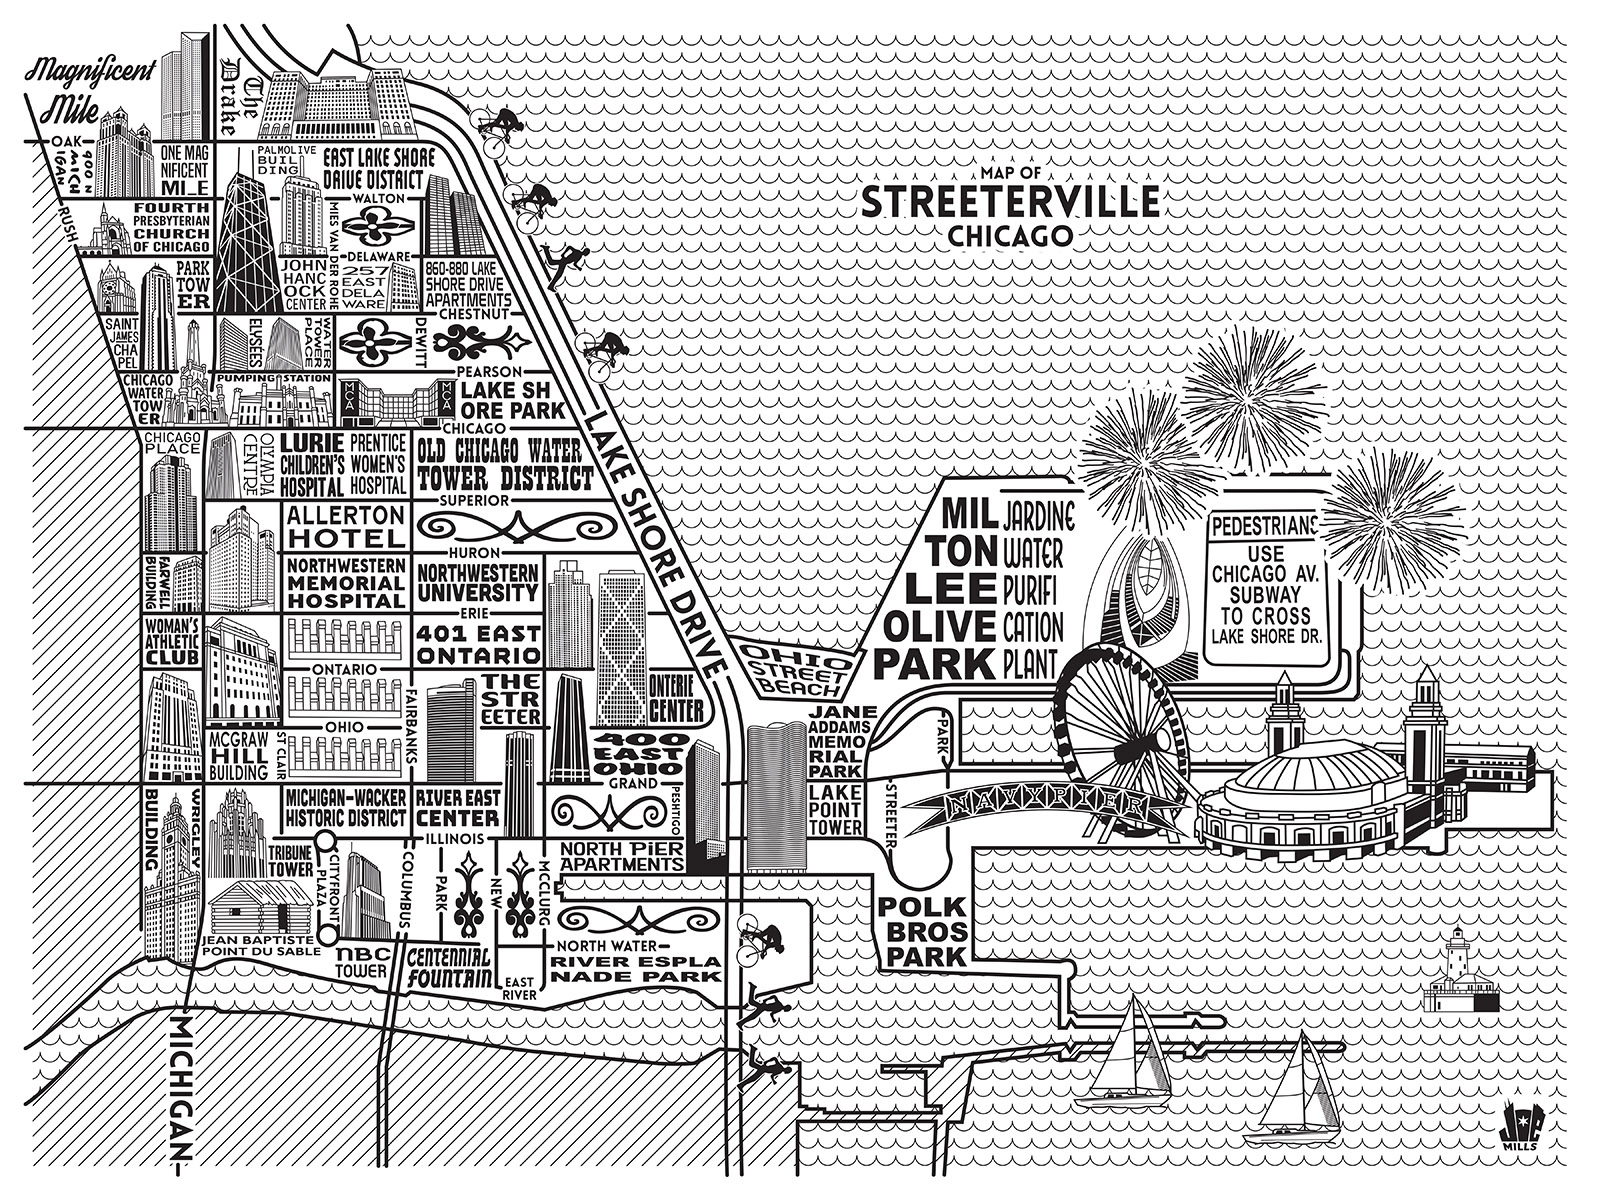 Streeterville Map -  Purchase a map here